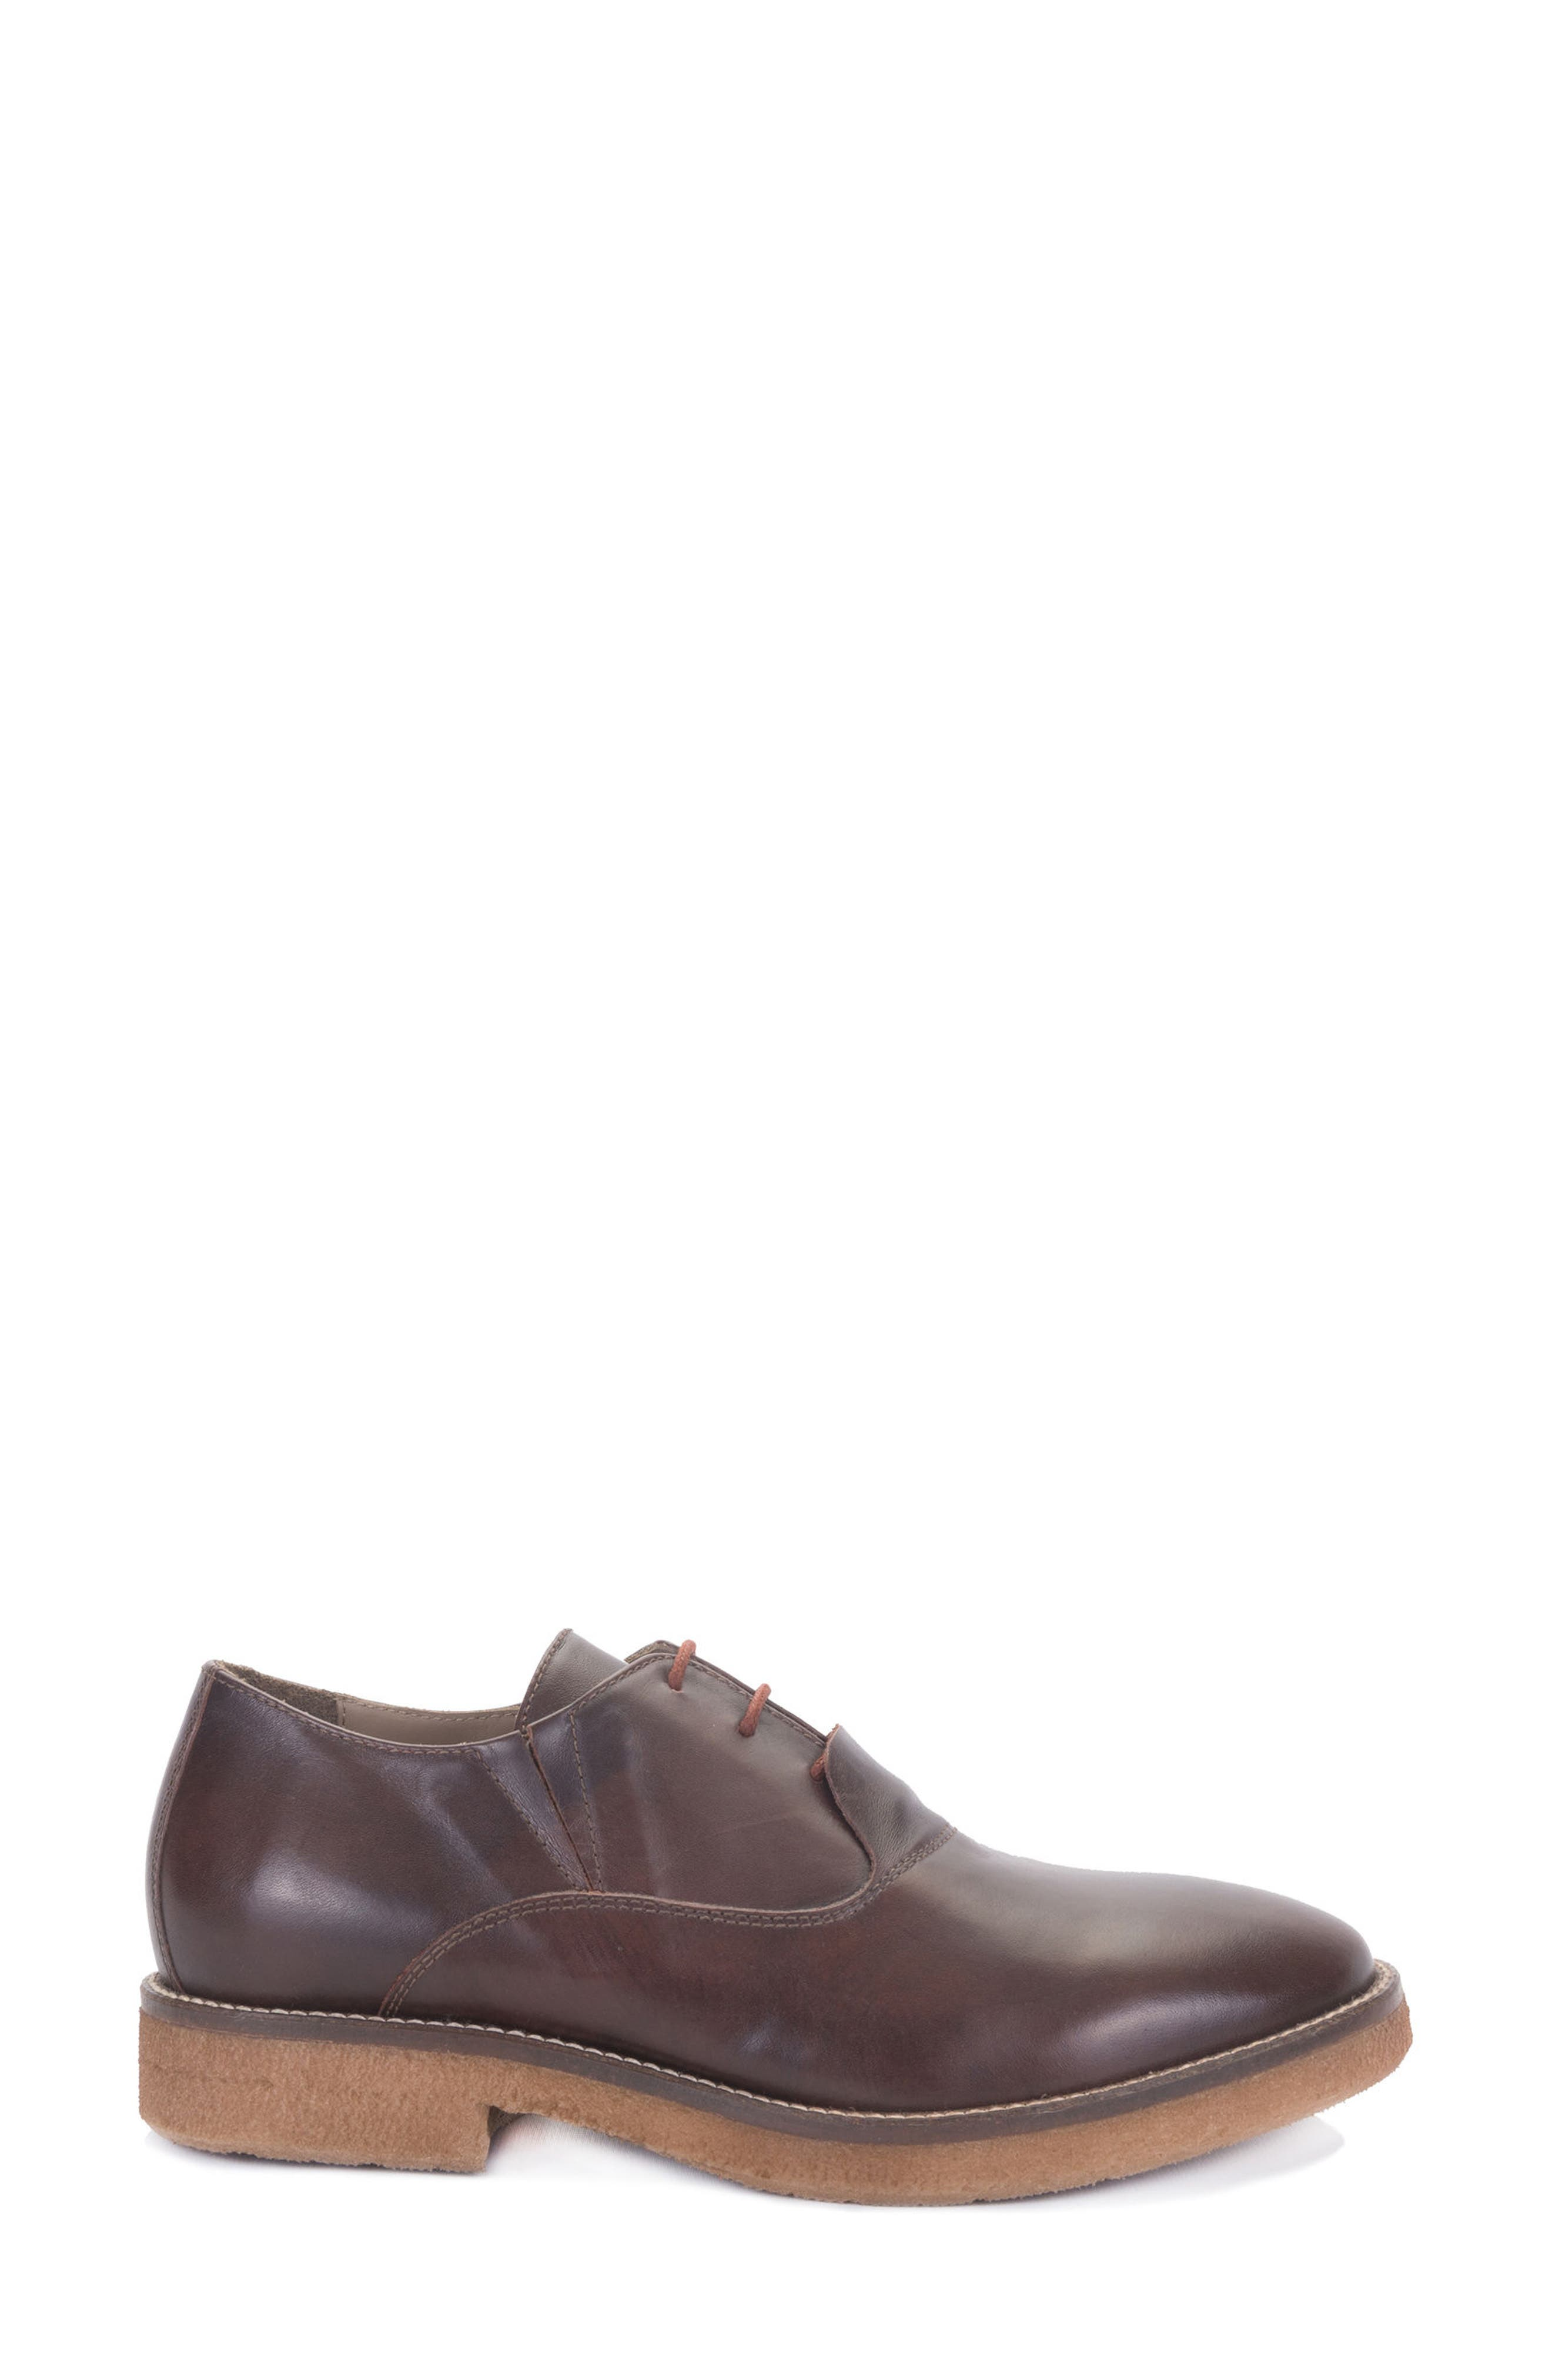 Molinella Water-Resistant Oxford,                             Alternate thumbnail 3, color,                             Ruggine Leather